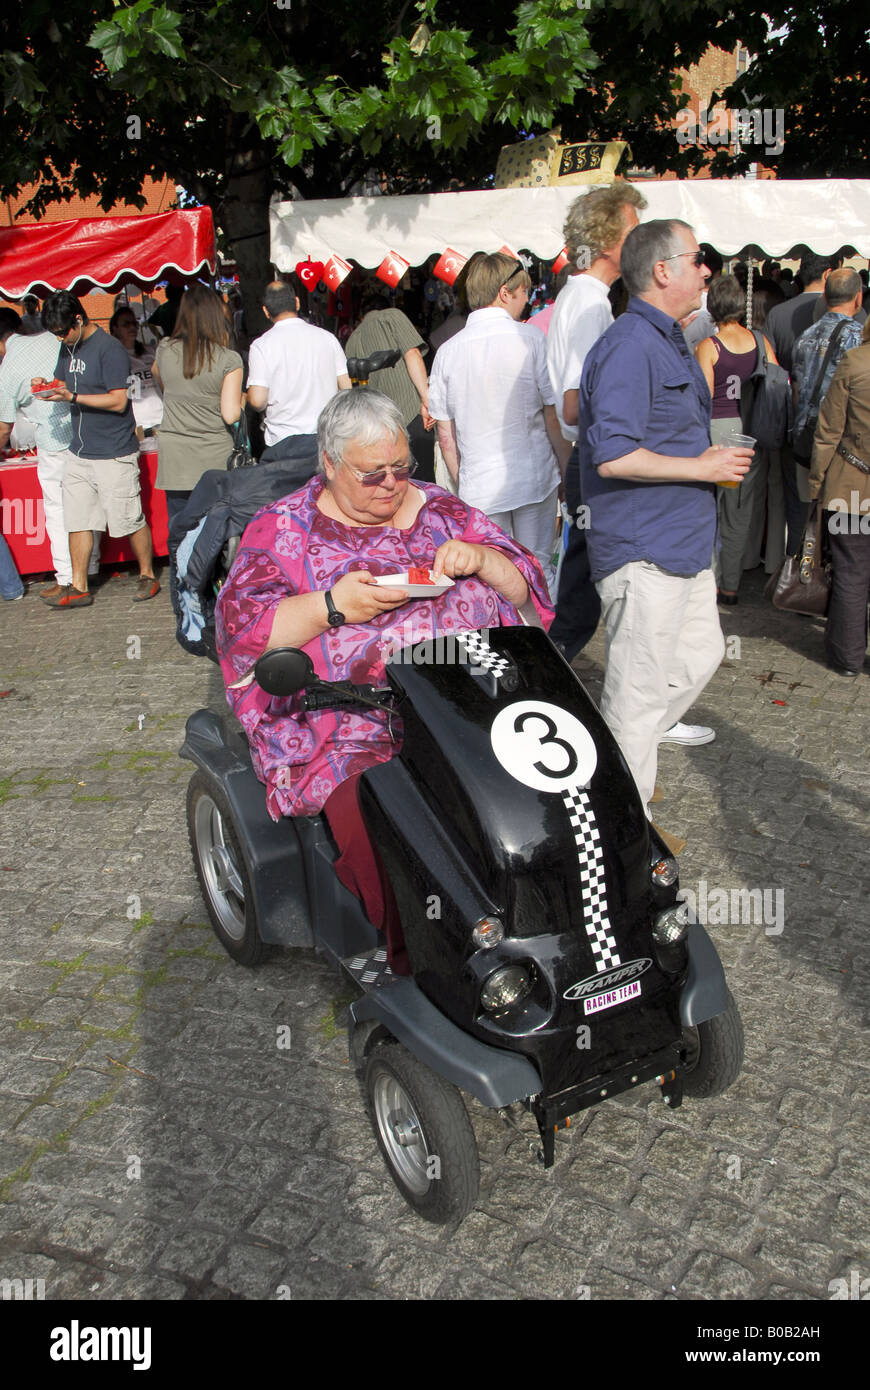 LADY IN HER 70`s EATING HER TAKEWAY WHILE IN HER WHEELCHAIR - Stock Image